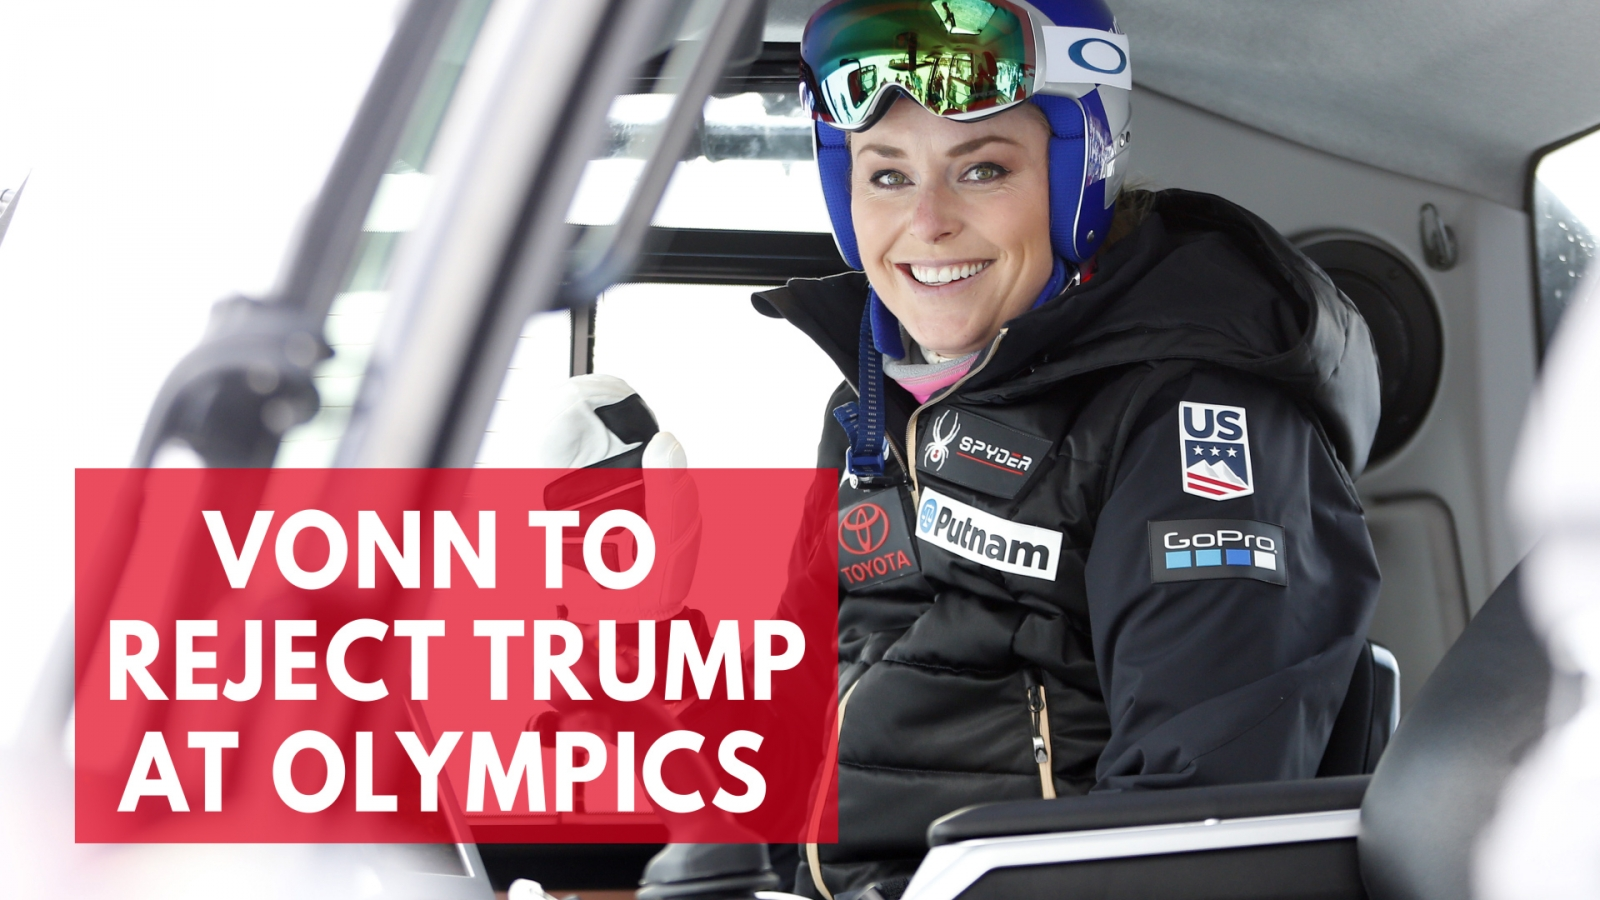 lindsey-vonn-to-reject-president-trump-at-winter-olympics-games